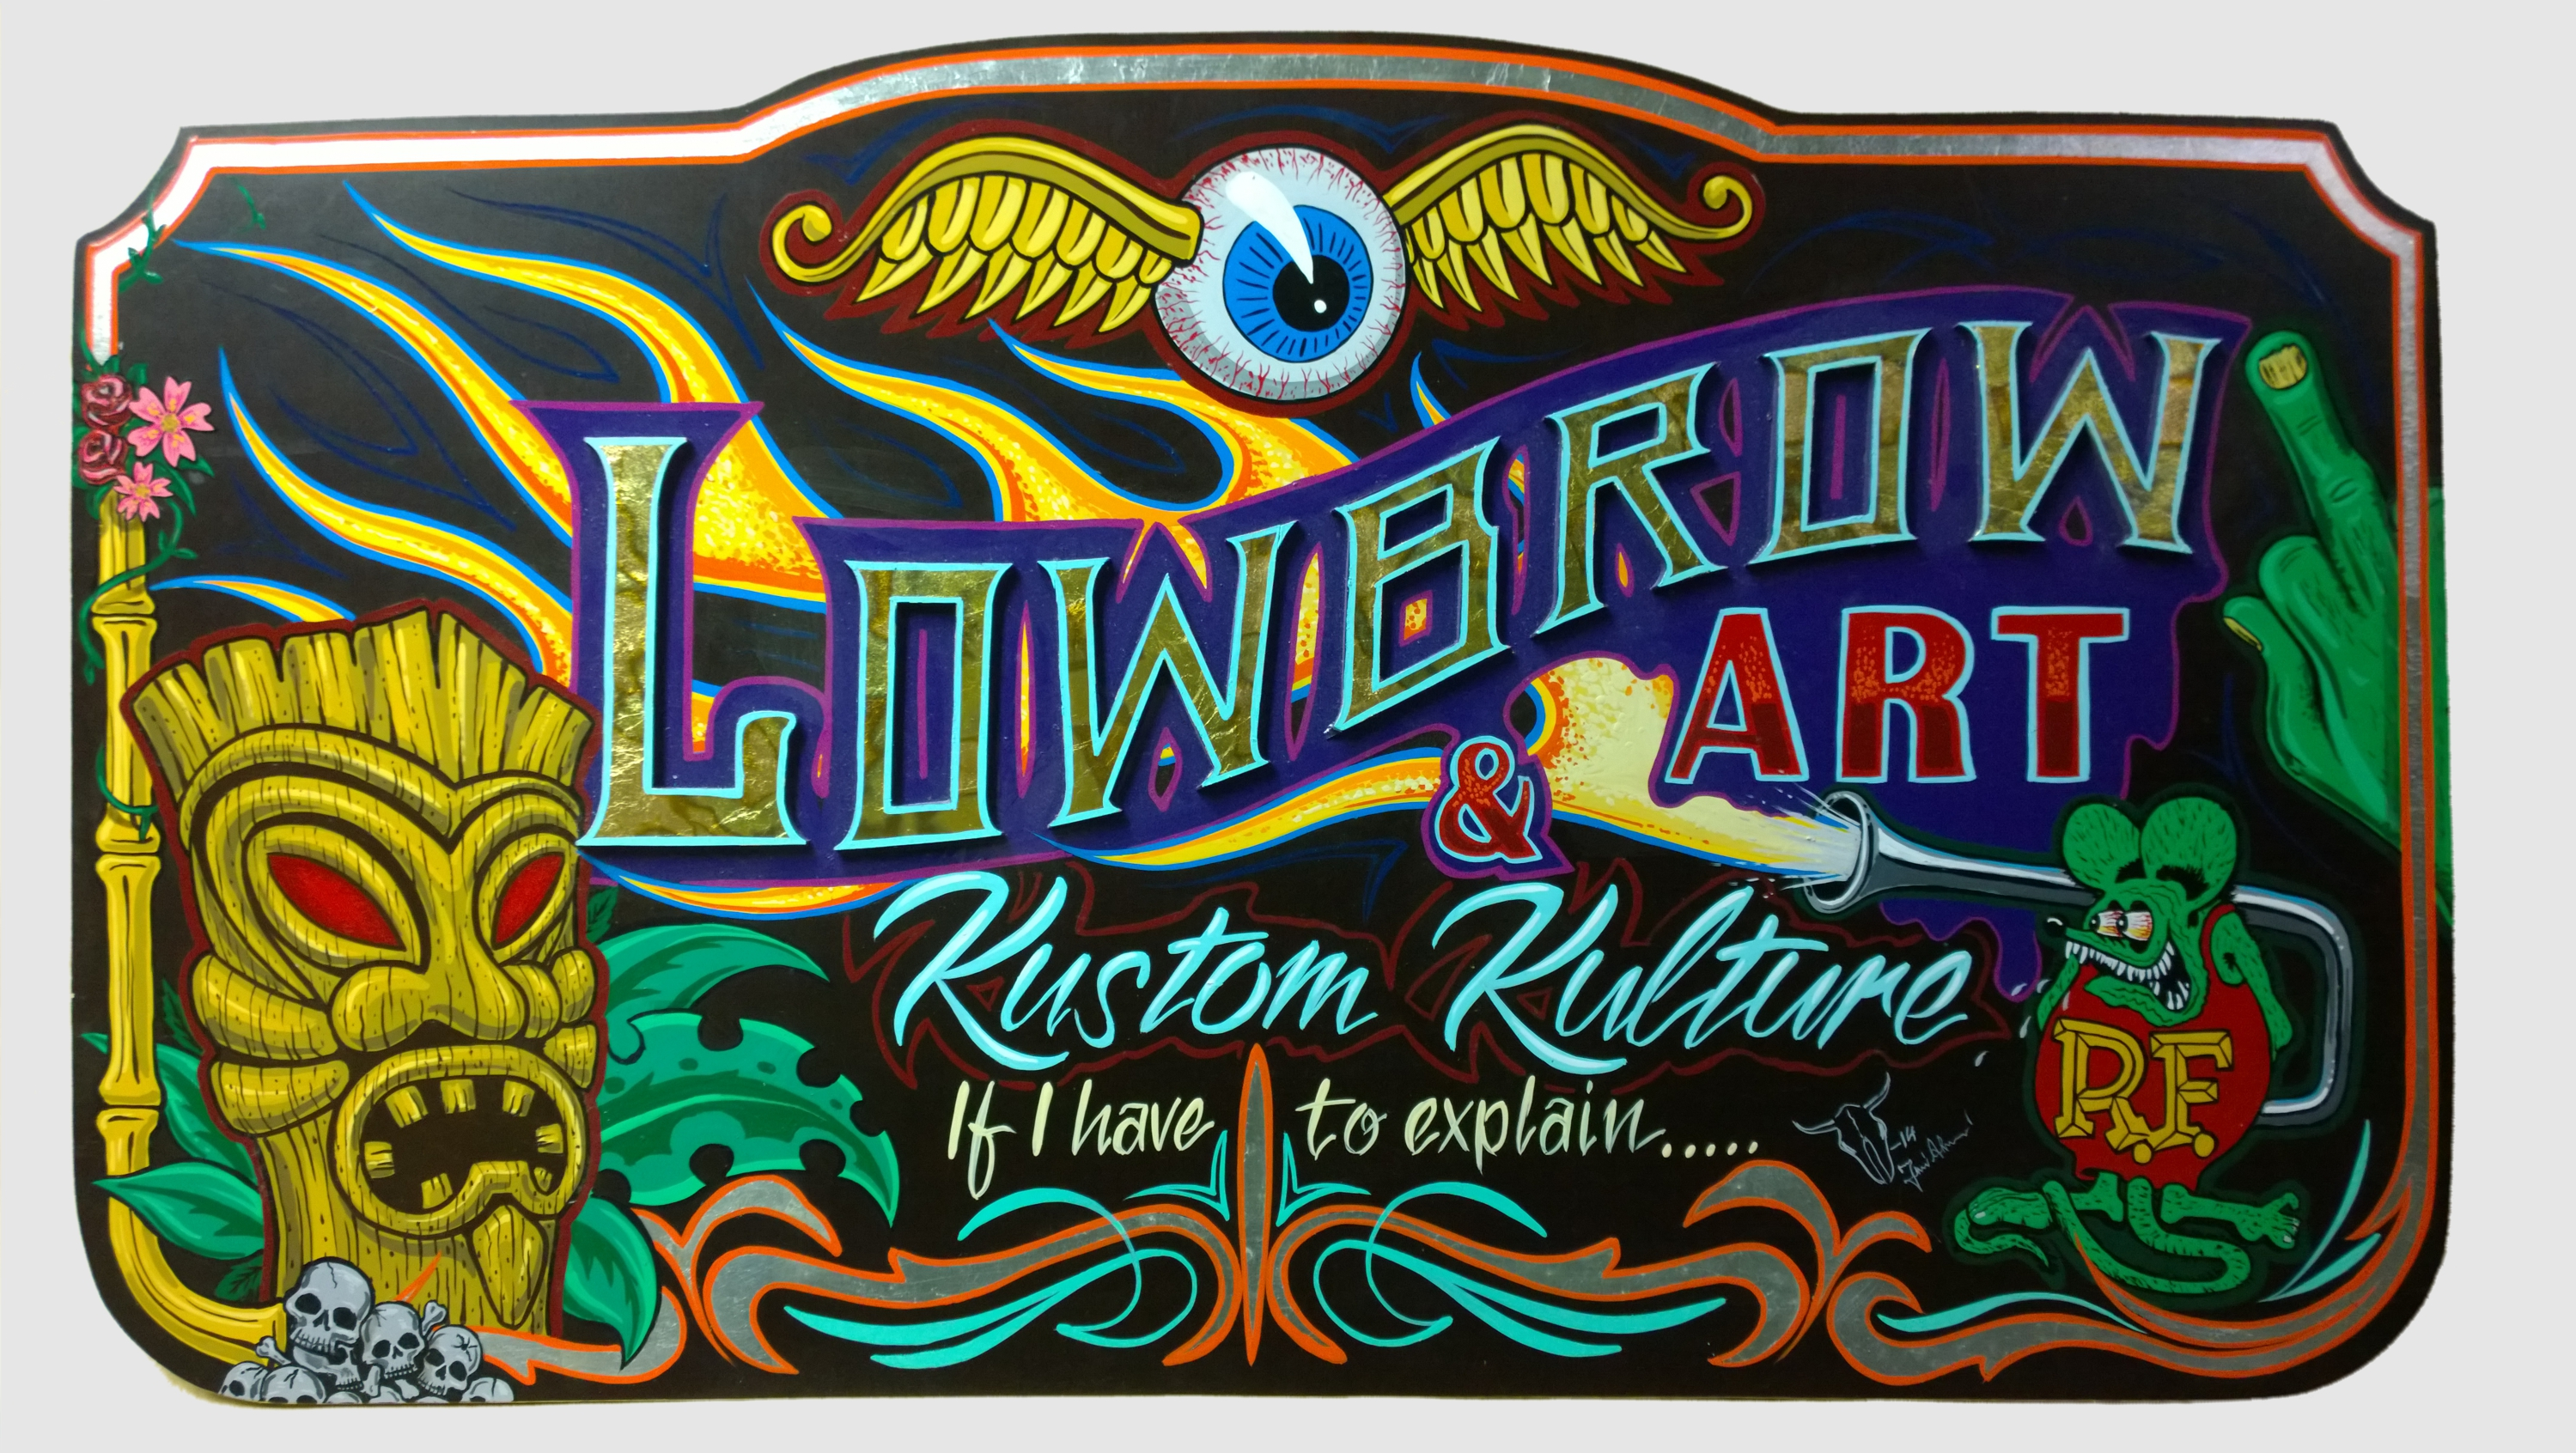 Jussi Alasalmi, a reference panel for the Kustom Kulture and Low Brow Art workshop in February 2014